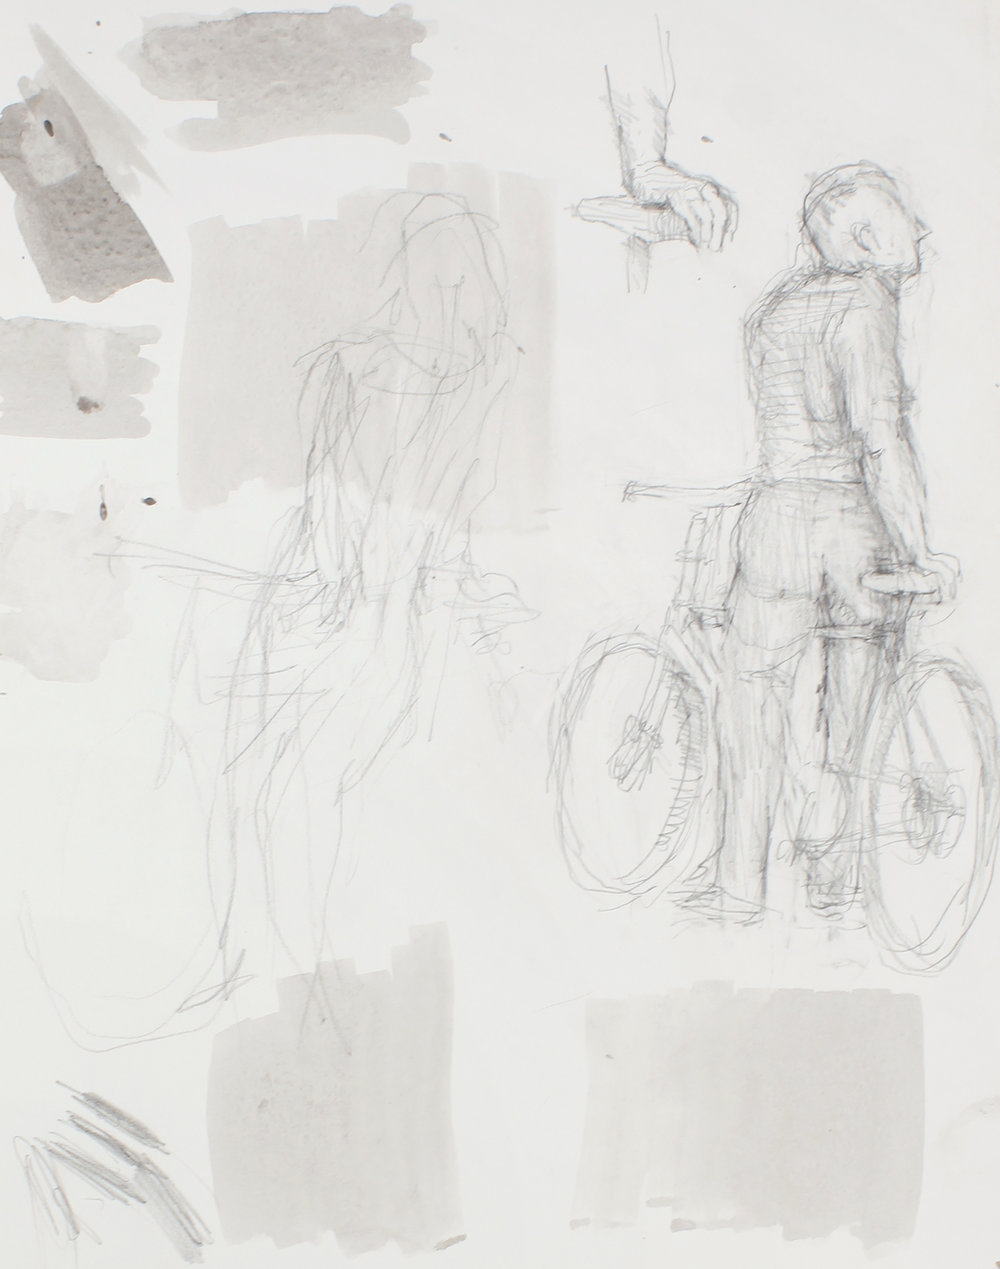 1989_Study_of_Man_with_Bicycle_From_Back_and_Detail_pencil_on_paper_15x11in_WPF626.jpg